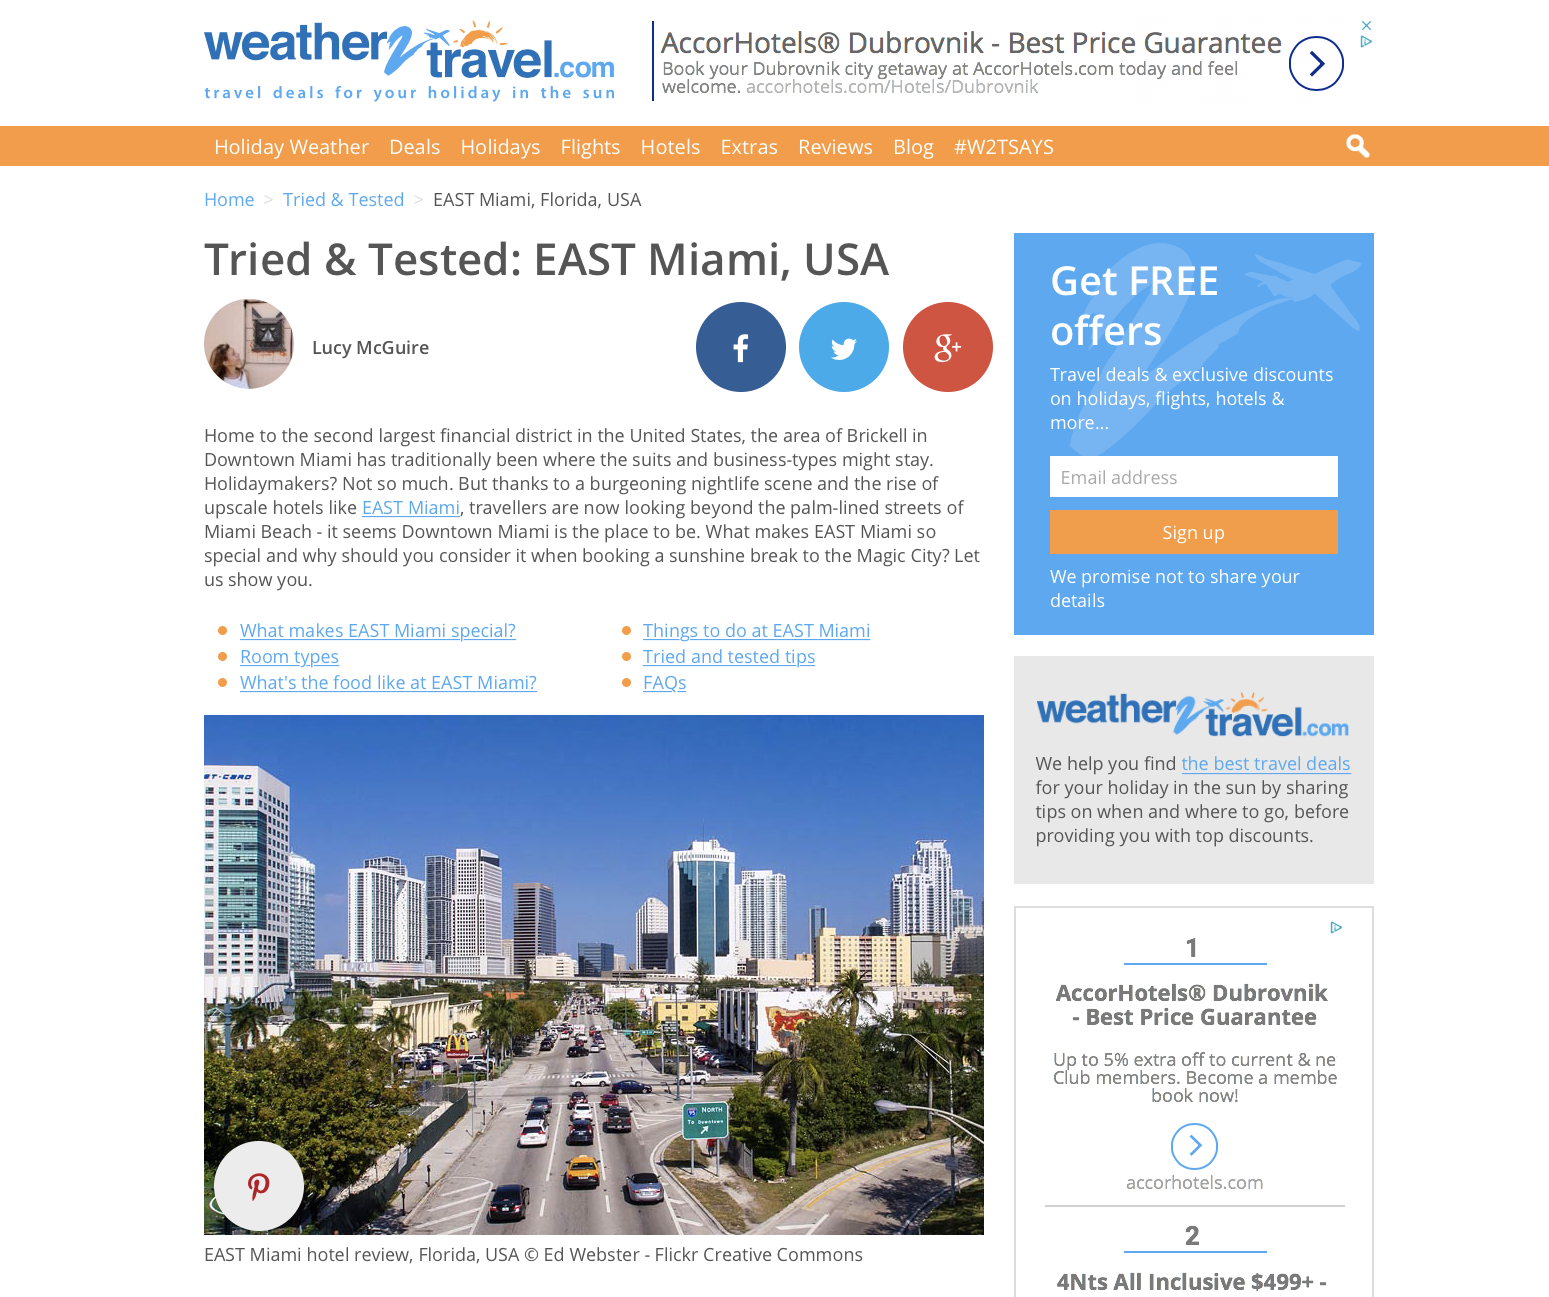 Hotel review, EAST Miami